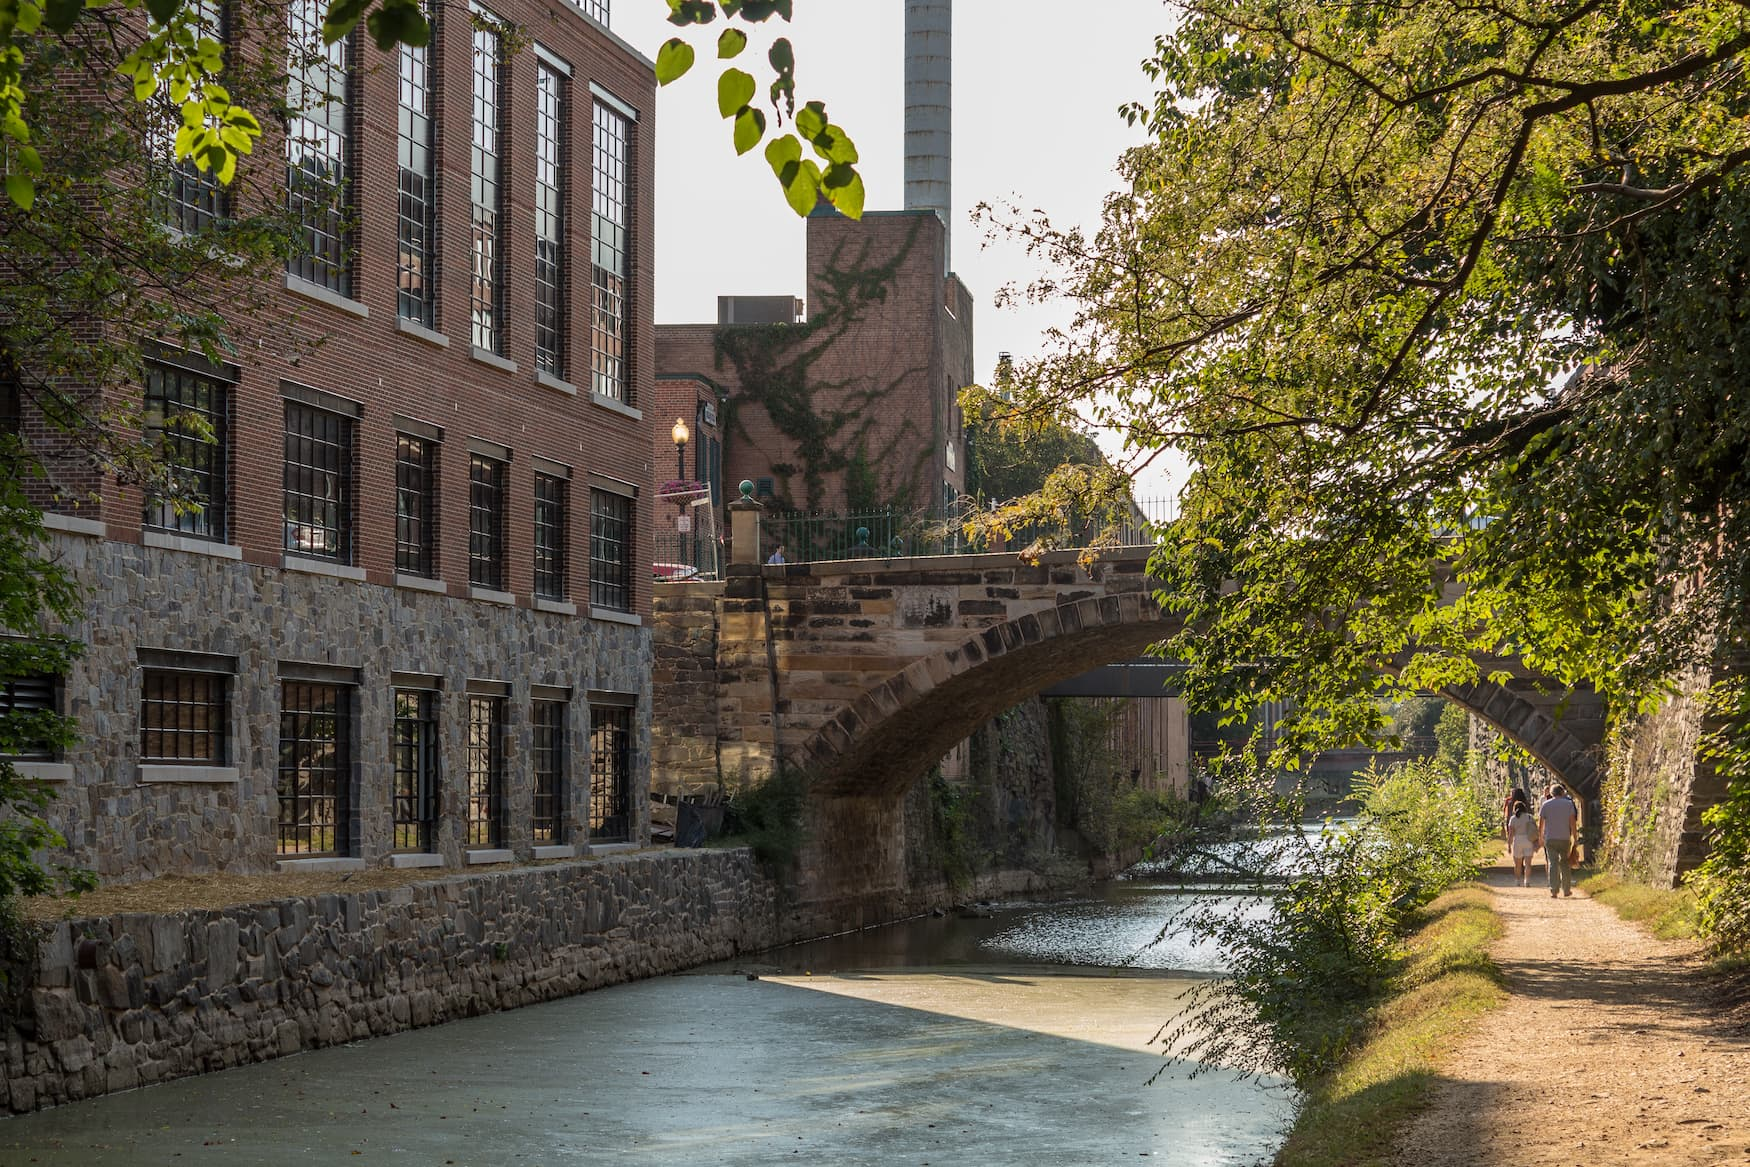 C&O Canal in Washington DC